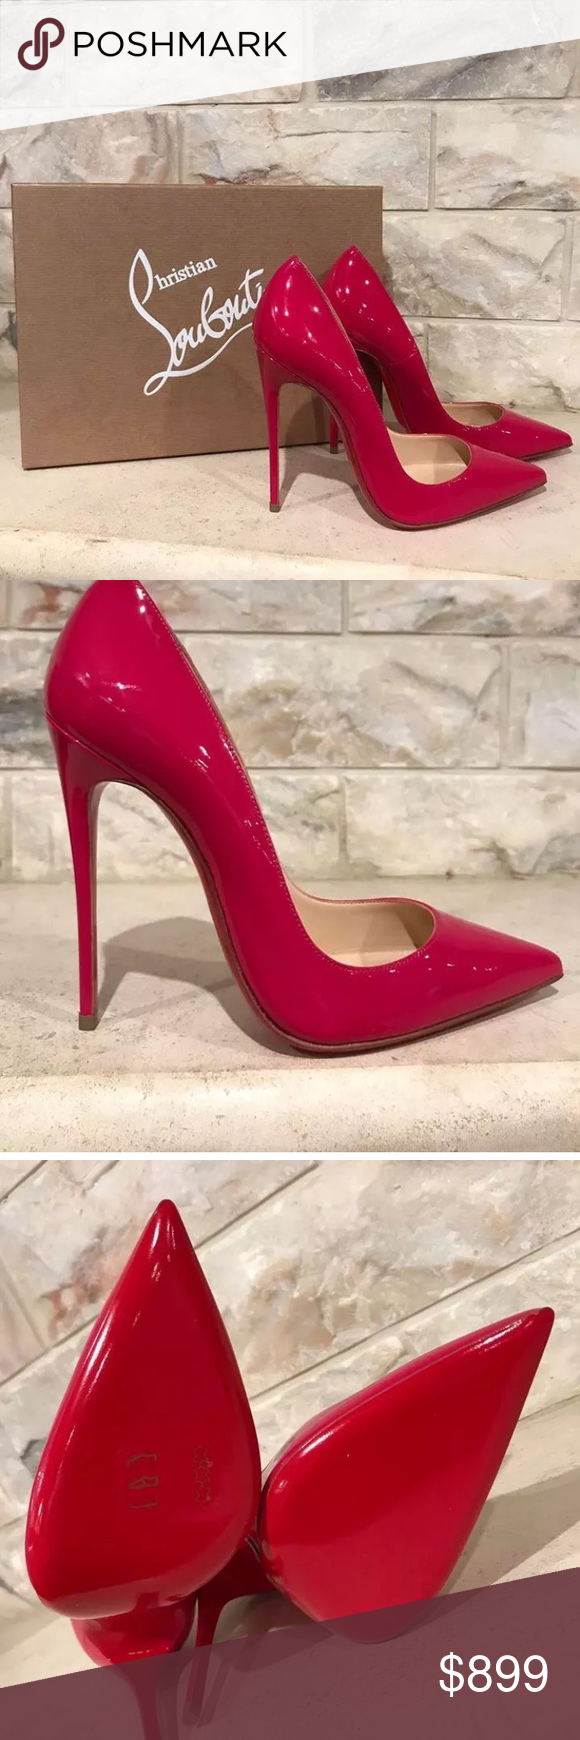 b9f364a2d2f Louboutin So Kate Heels Christian Louboutin So Kate 120 Pink Rosa Patent  Leather Heel Brand  Christian Louboutin Size  42 (know your Louboutin size)  Name  ...